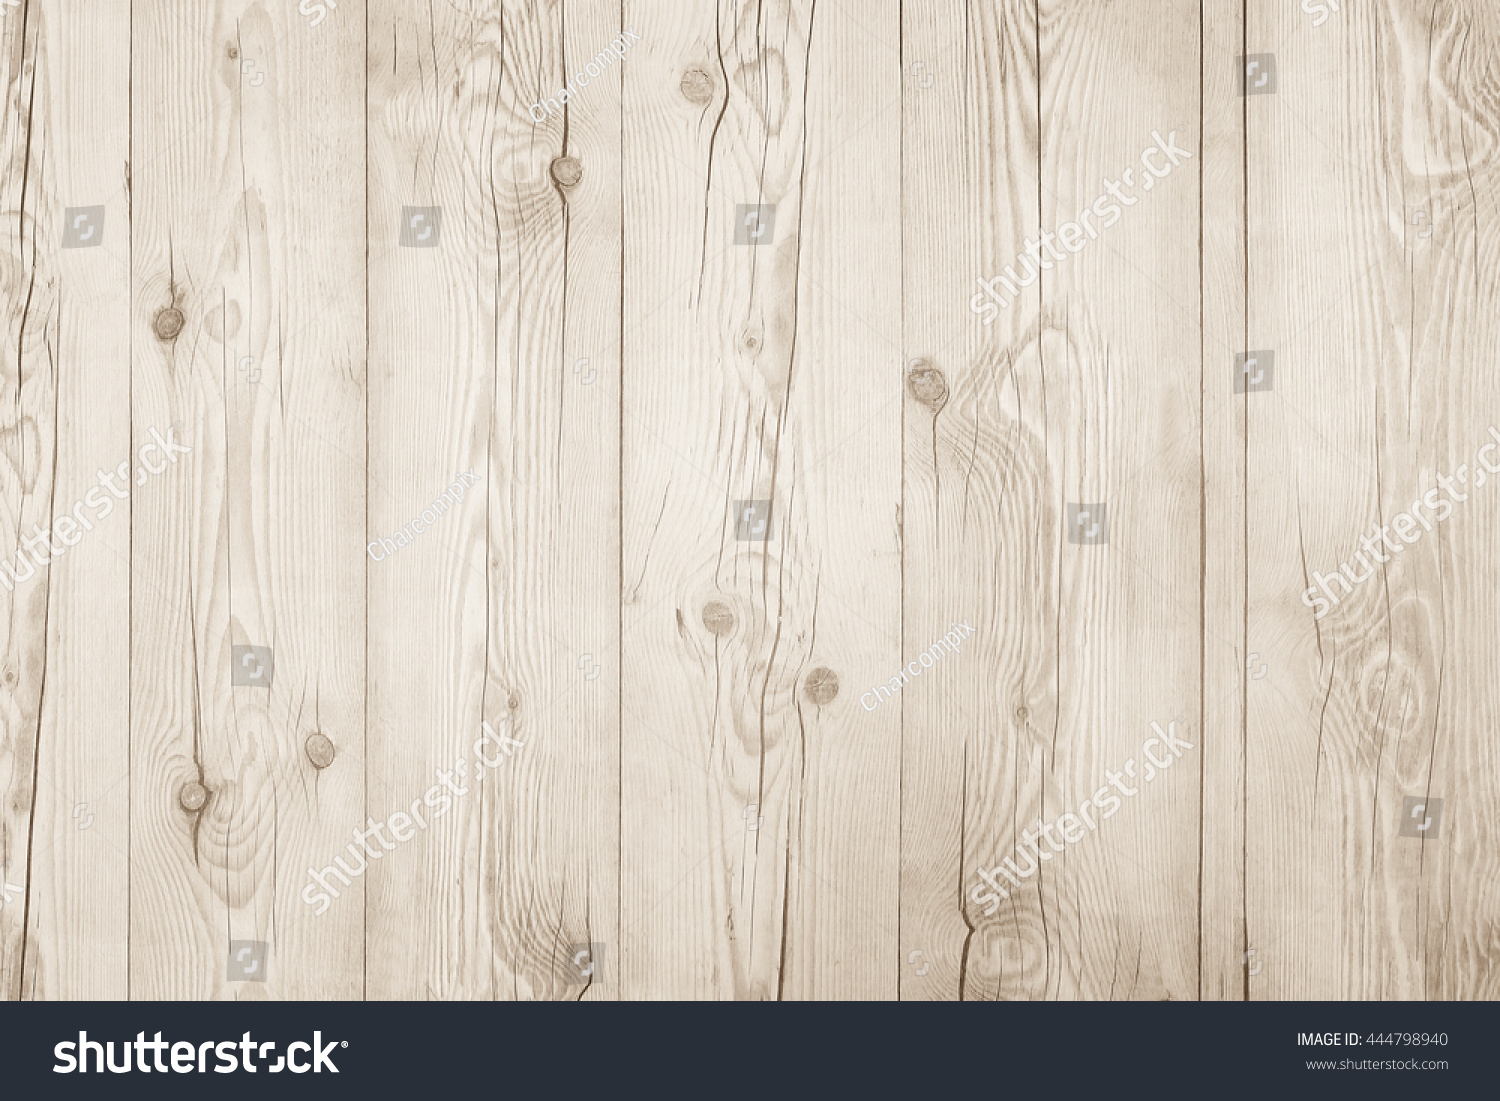 white wood floor texture wall background gray plank pattern surface pastel painted board grain tabletop